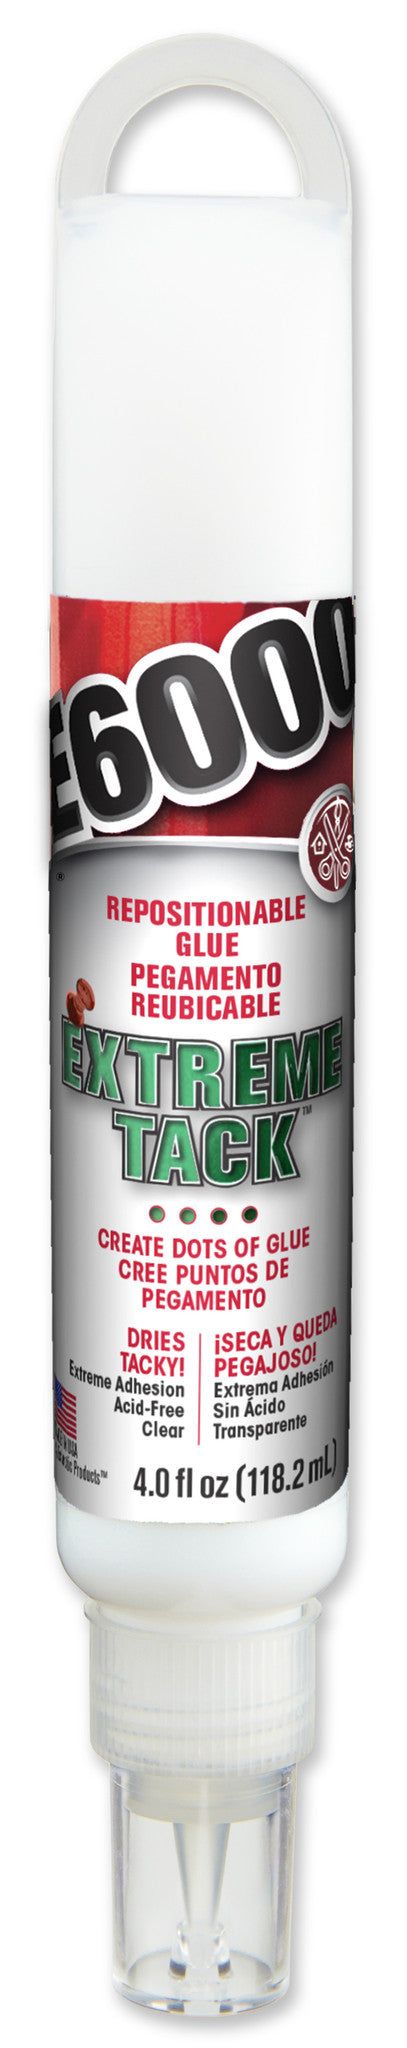 Extreme Tack 4 fl ounce Hang Bottle 565102 - Creative Wholesale